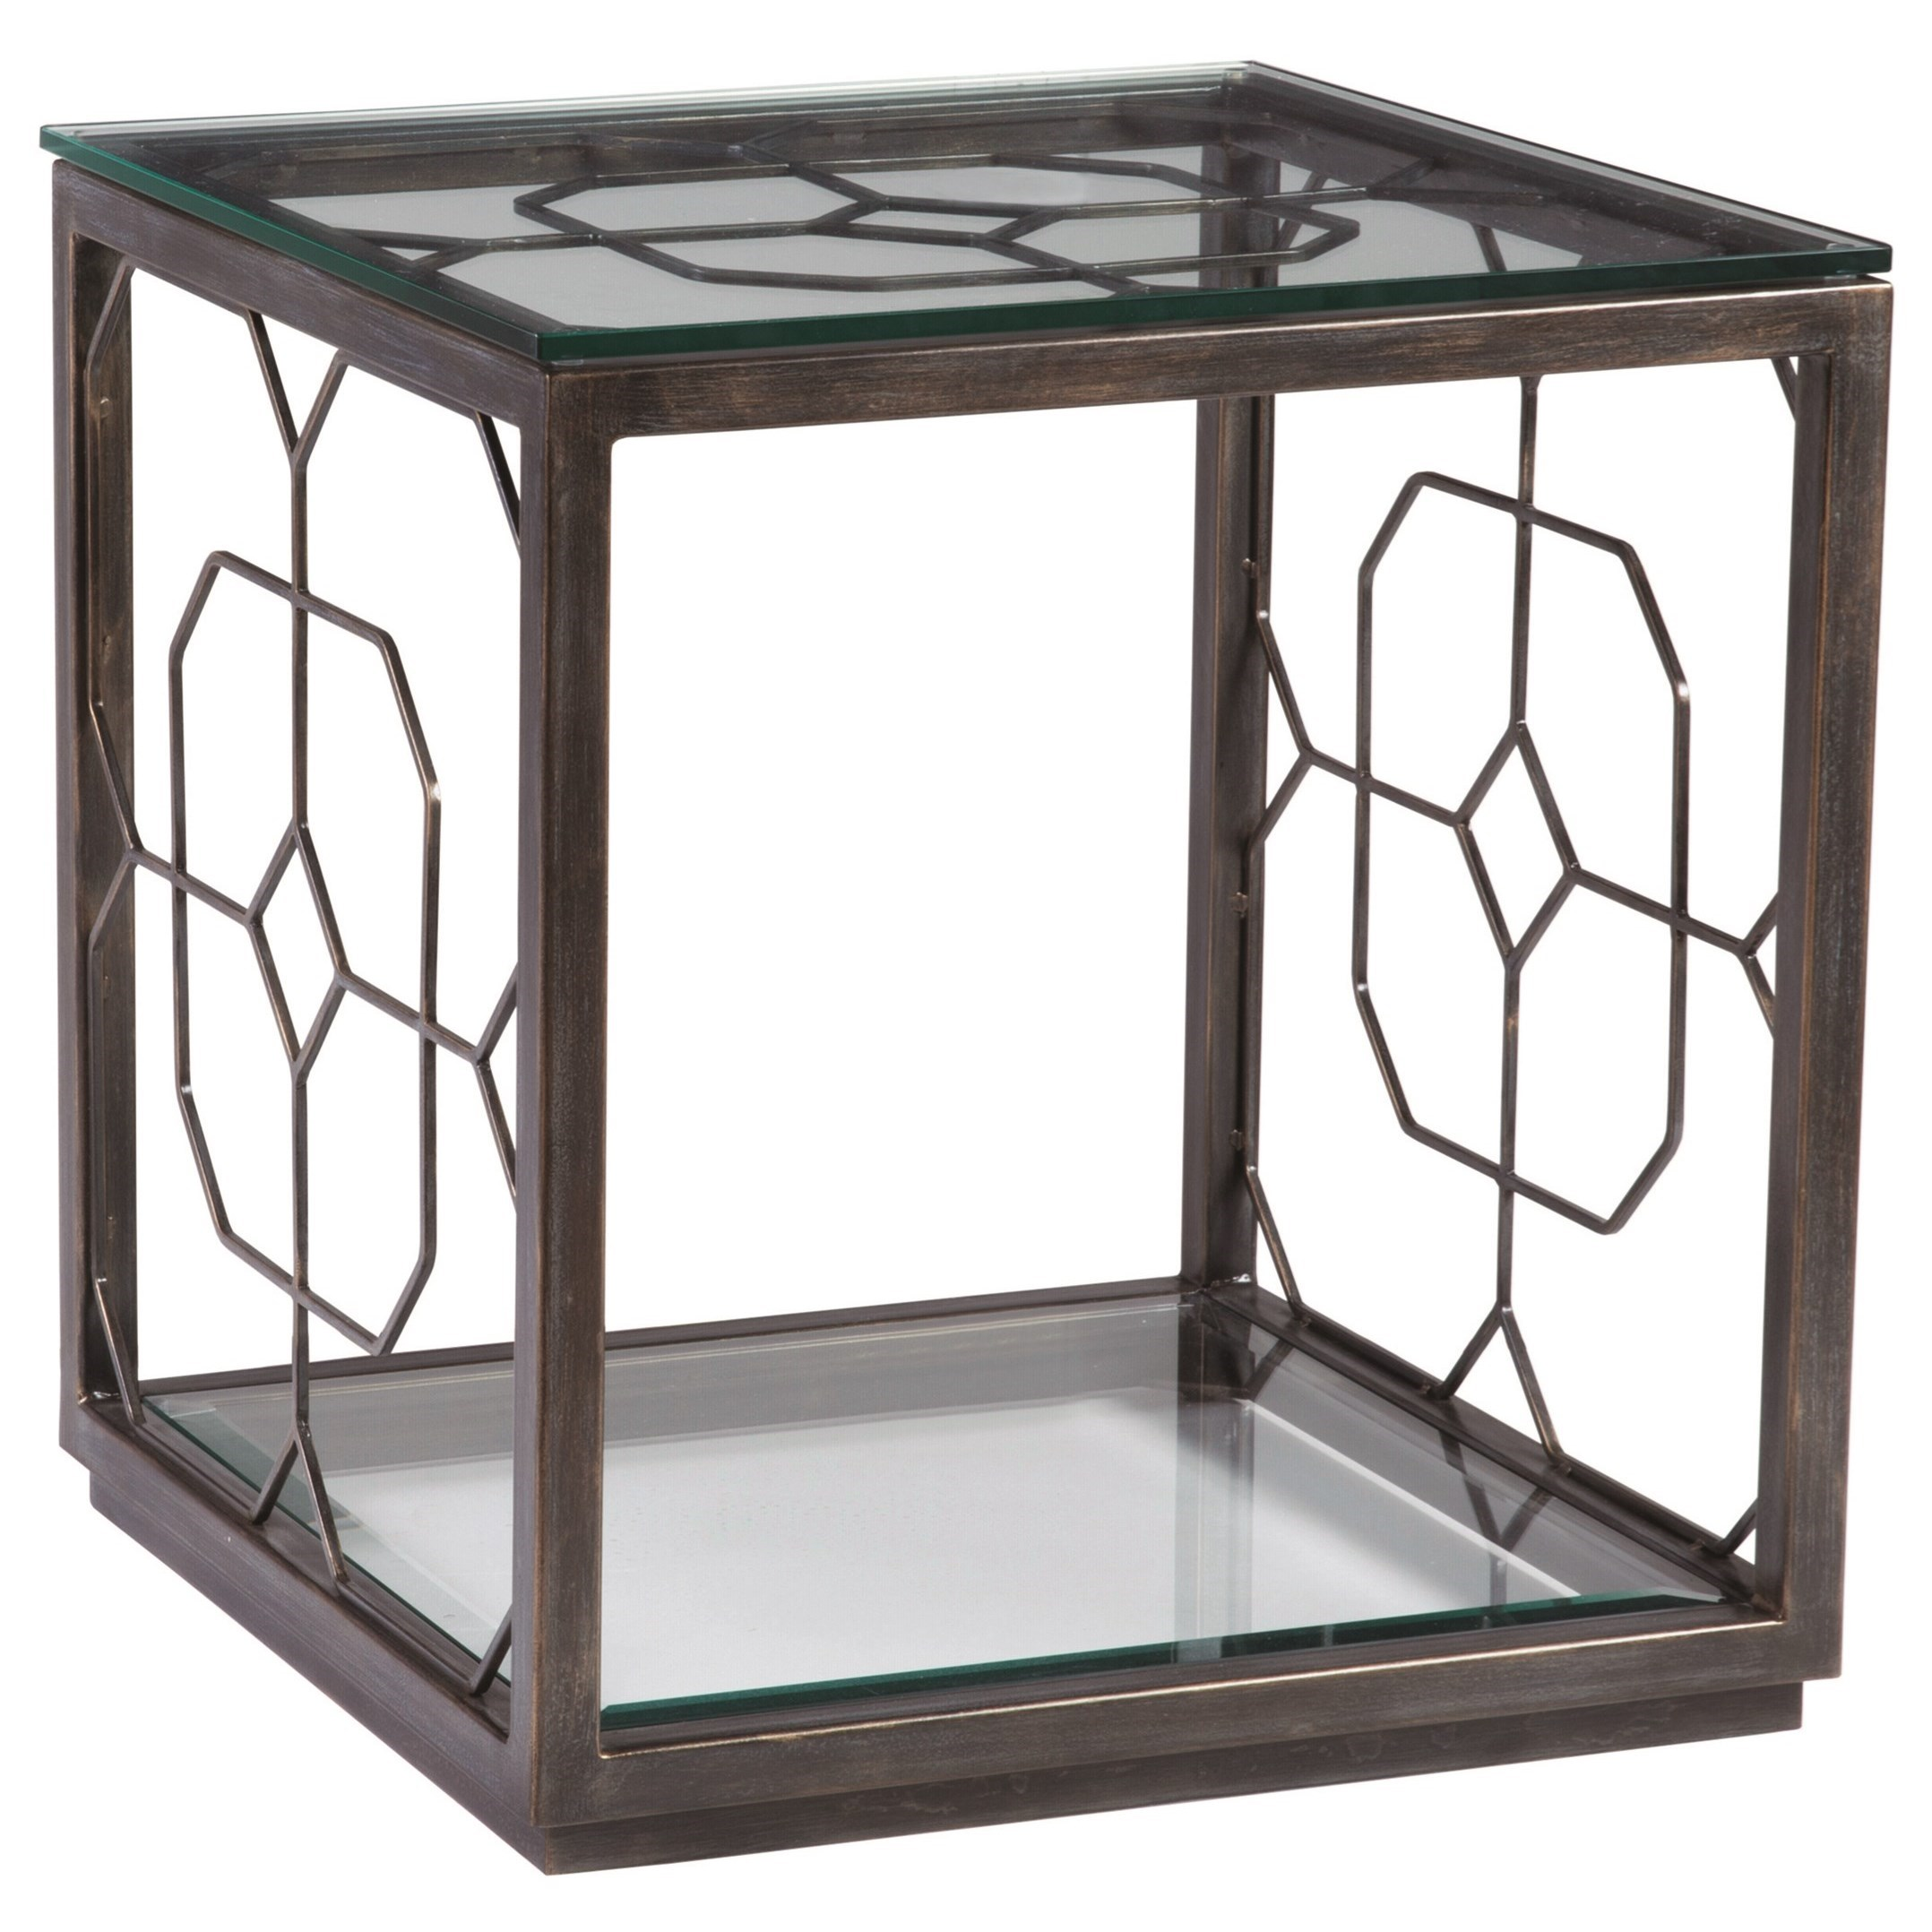 Metal Designs Honeycomb Square End Table by Artistica at Sprintz Furniture